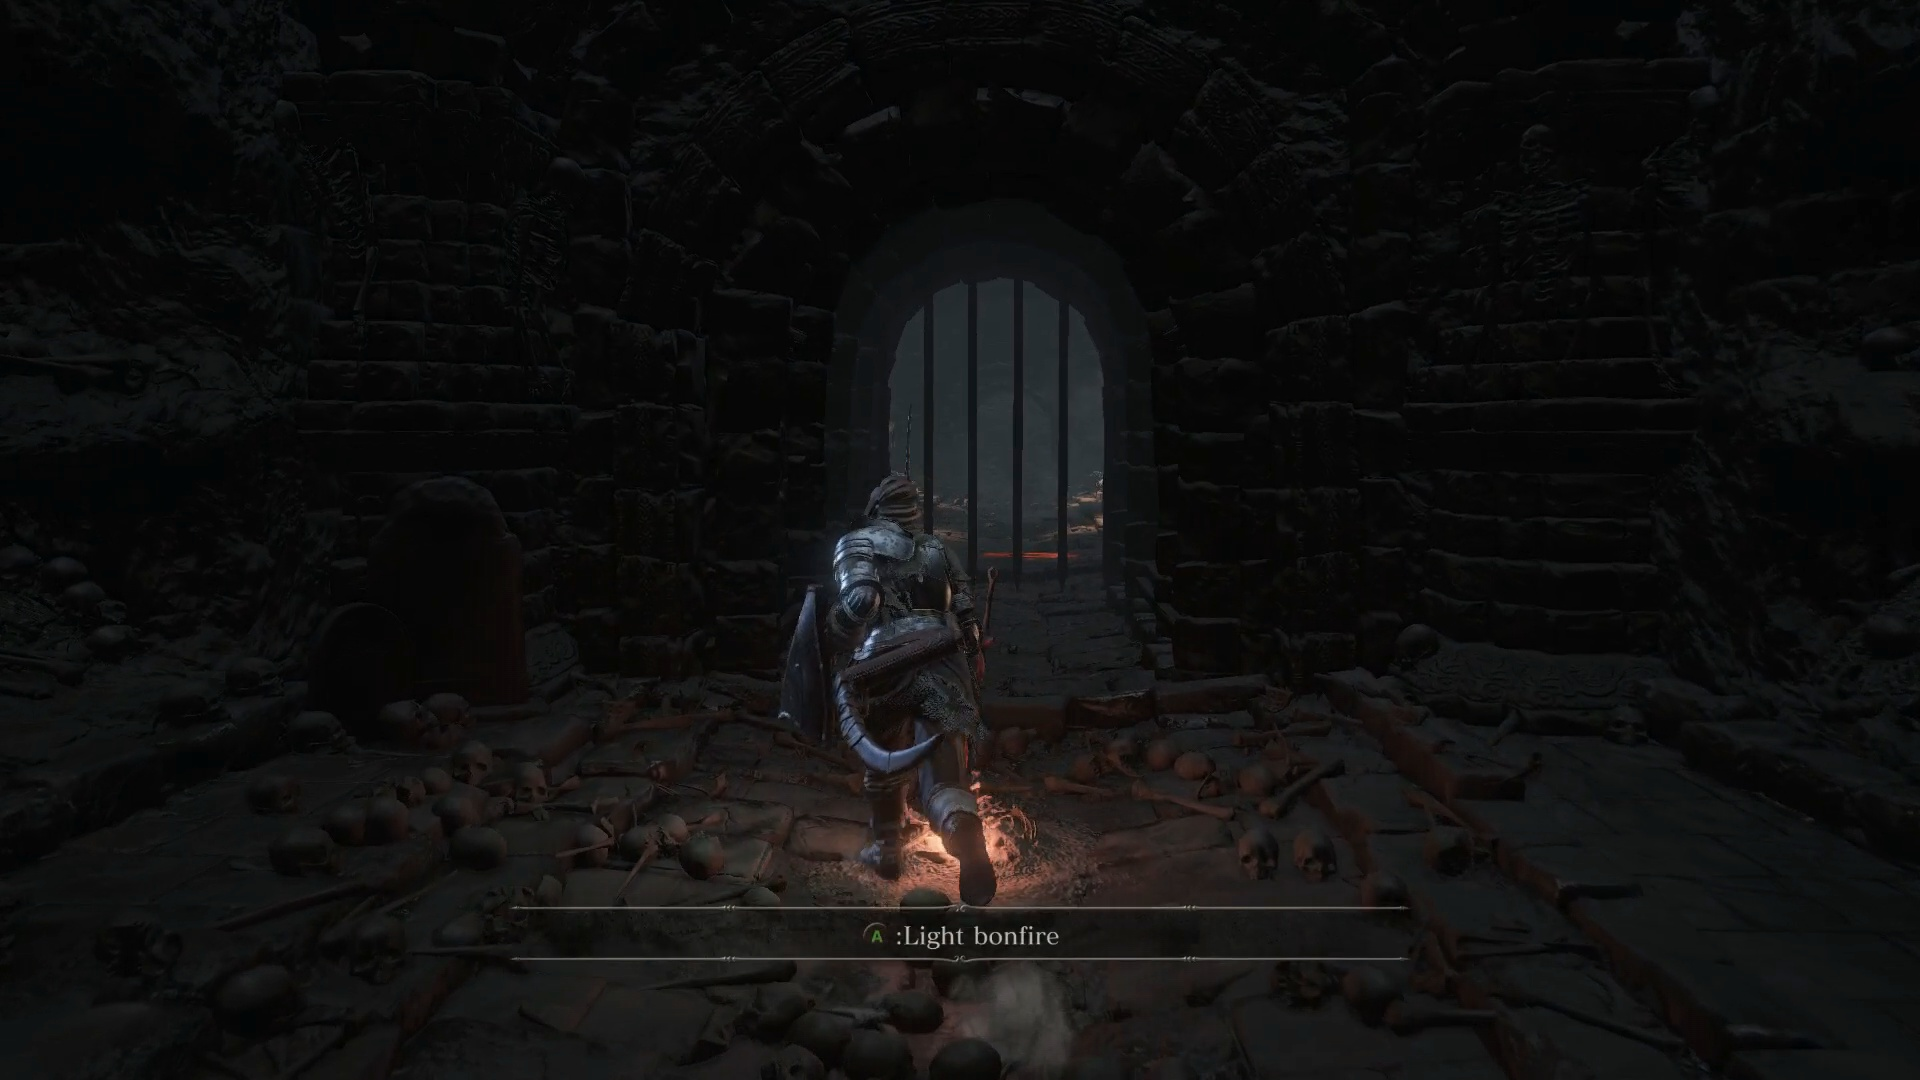 Dark Souls 3 Catacombs Of Carthus Defeat The Fire Demon Usgamer Don't heal the dark sigil or the quest will fail.your time with yoel is limited. dark souls 3 catacombs of carthus